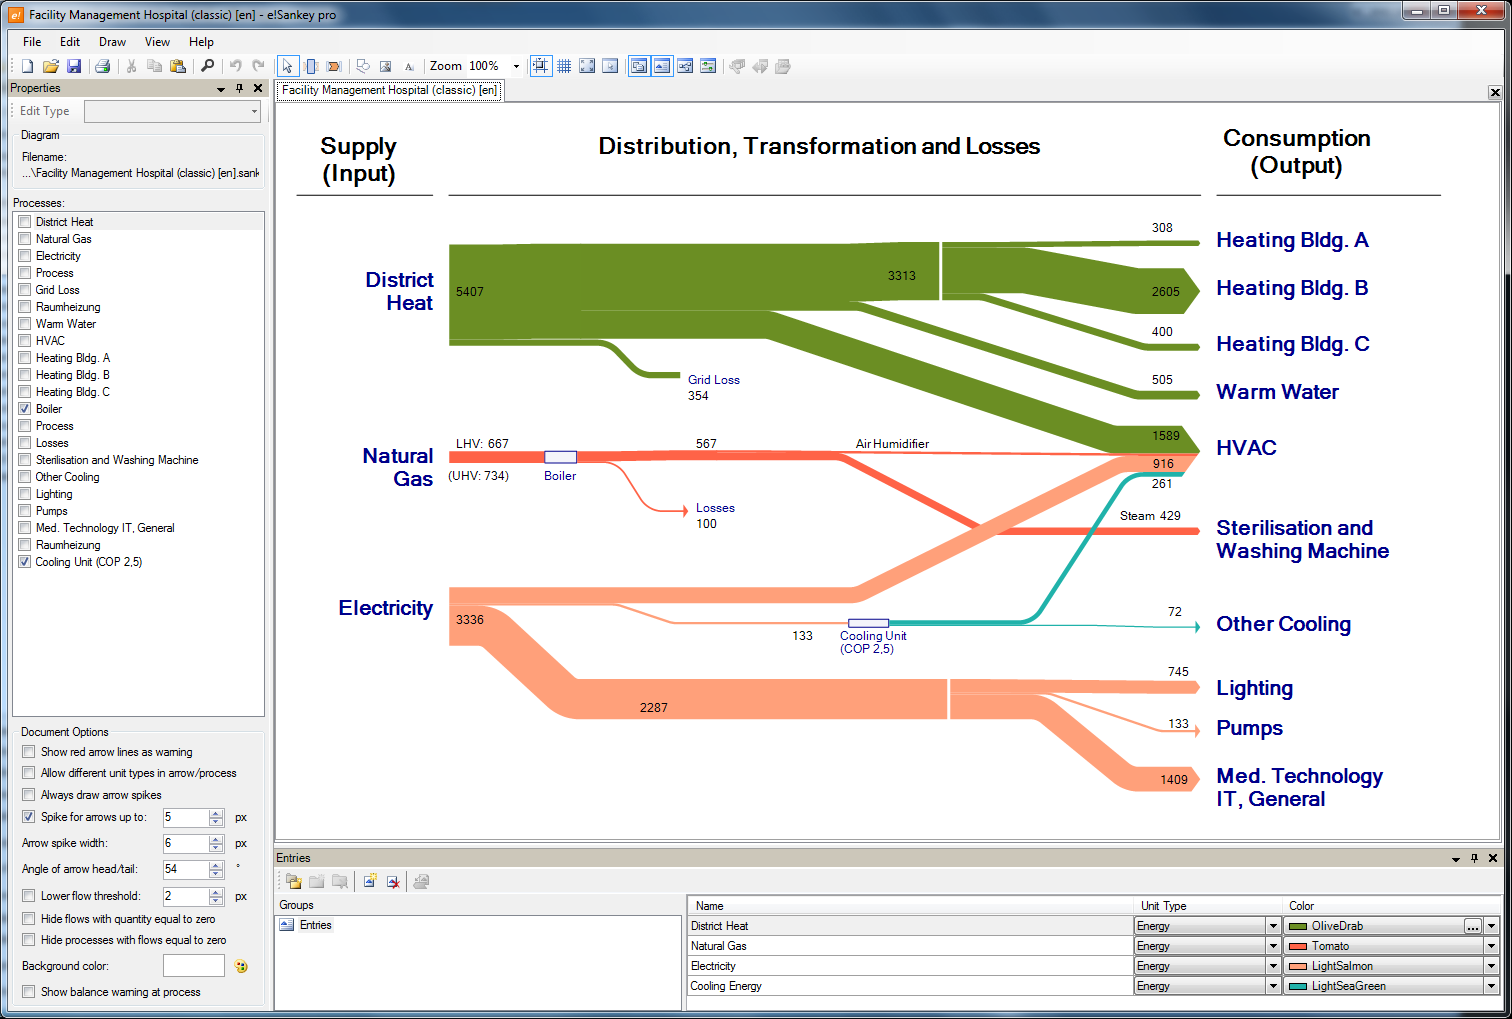 A software tool to visualize material, energy or cost flows with Sankey diagrams